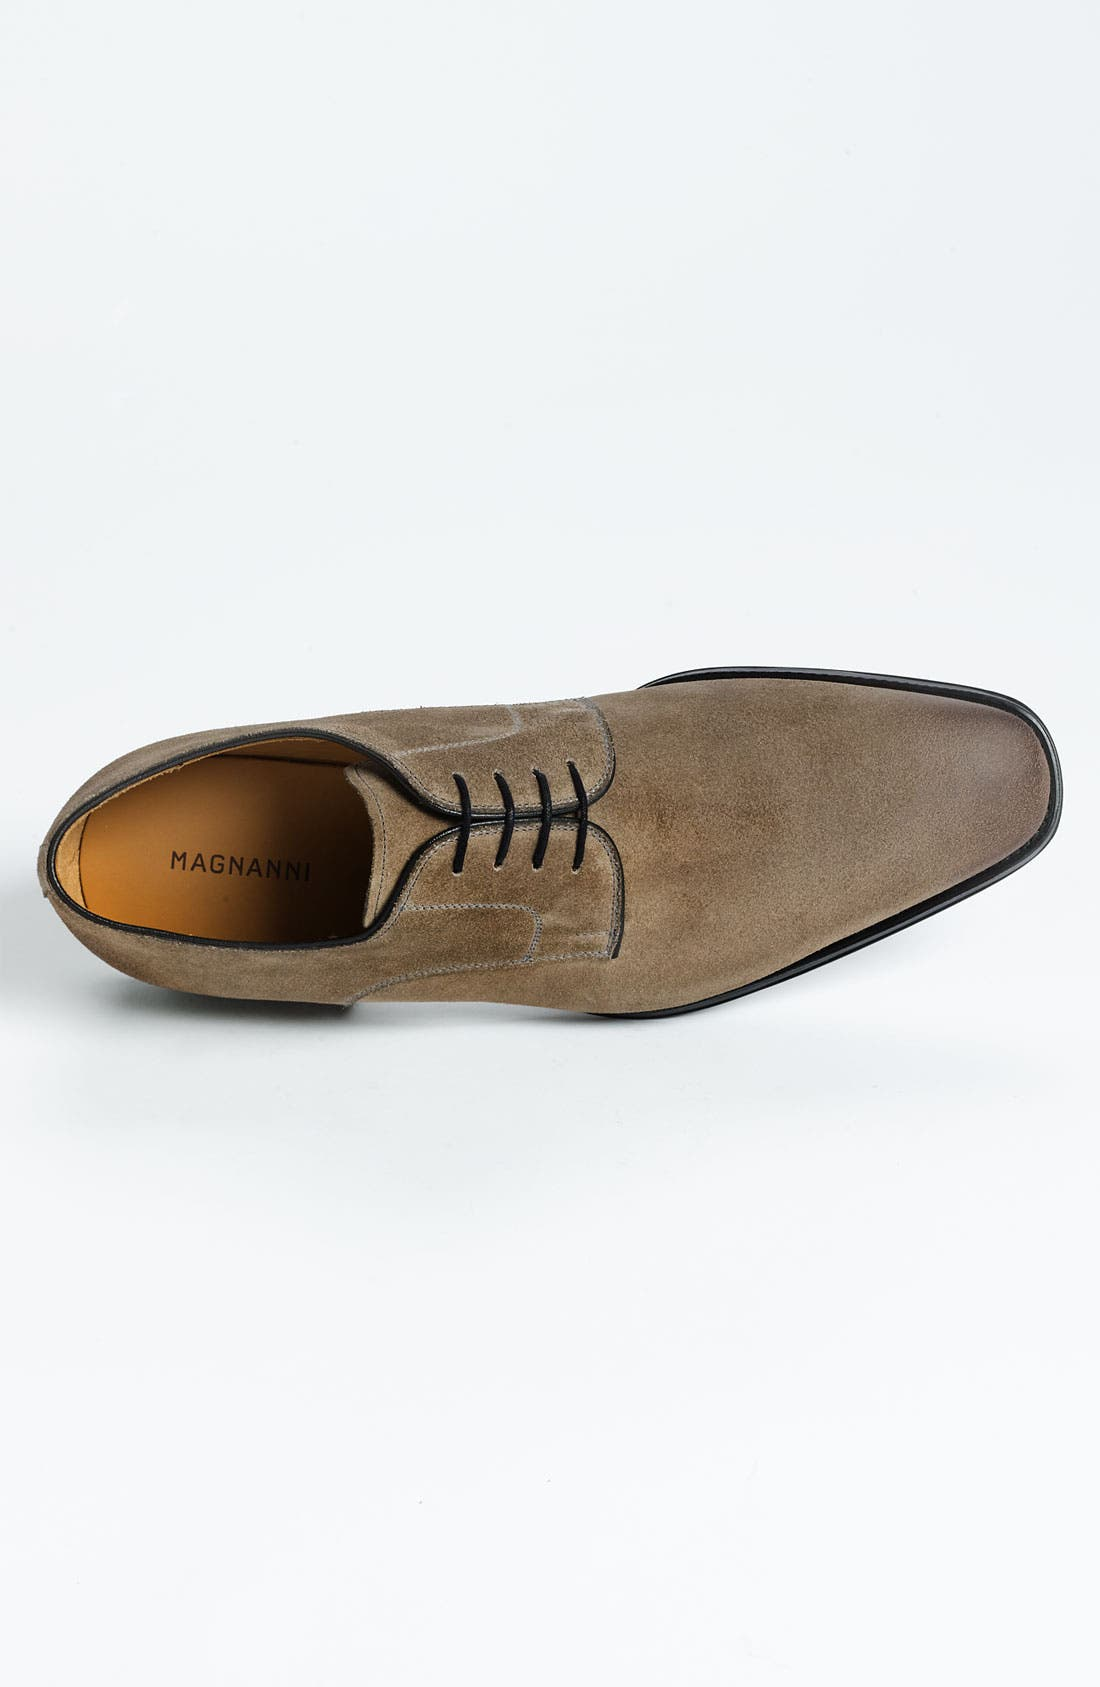 Alternate Image 3  - Magnanni 'Dino' Suede Buck Shoe